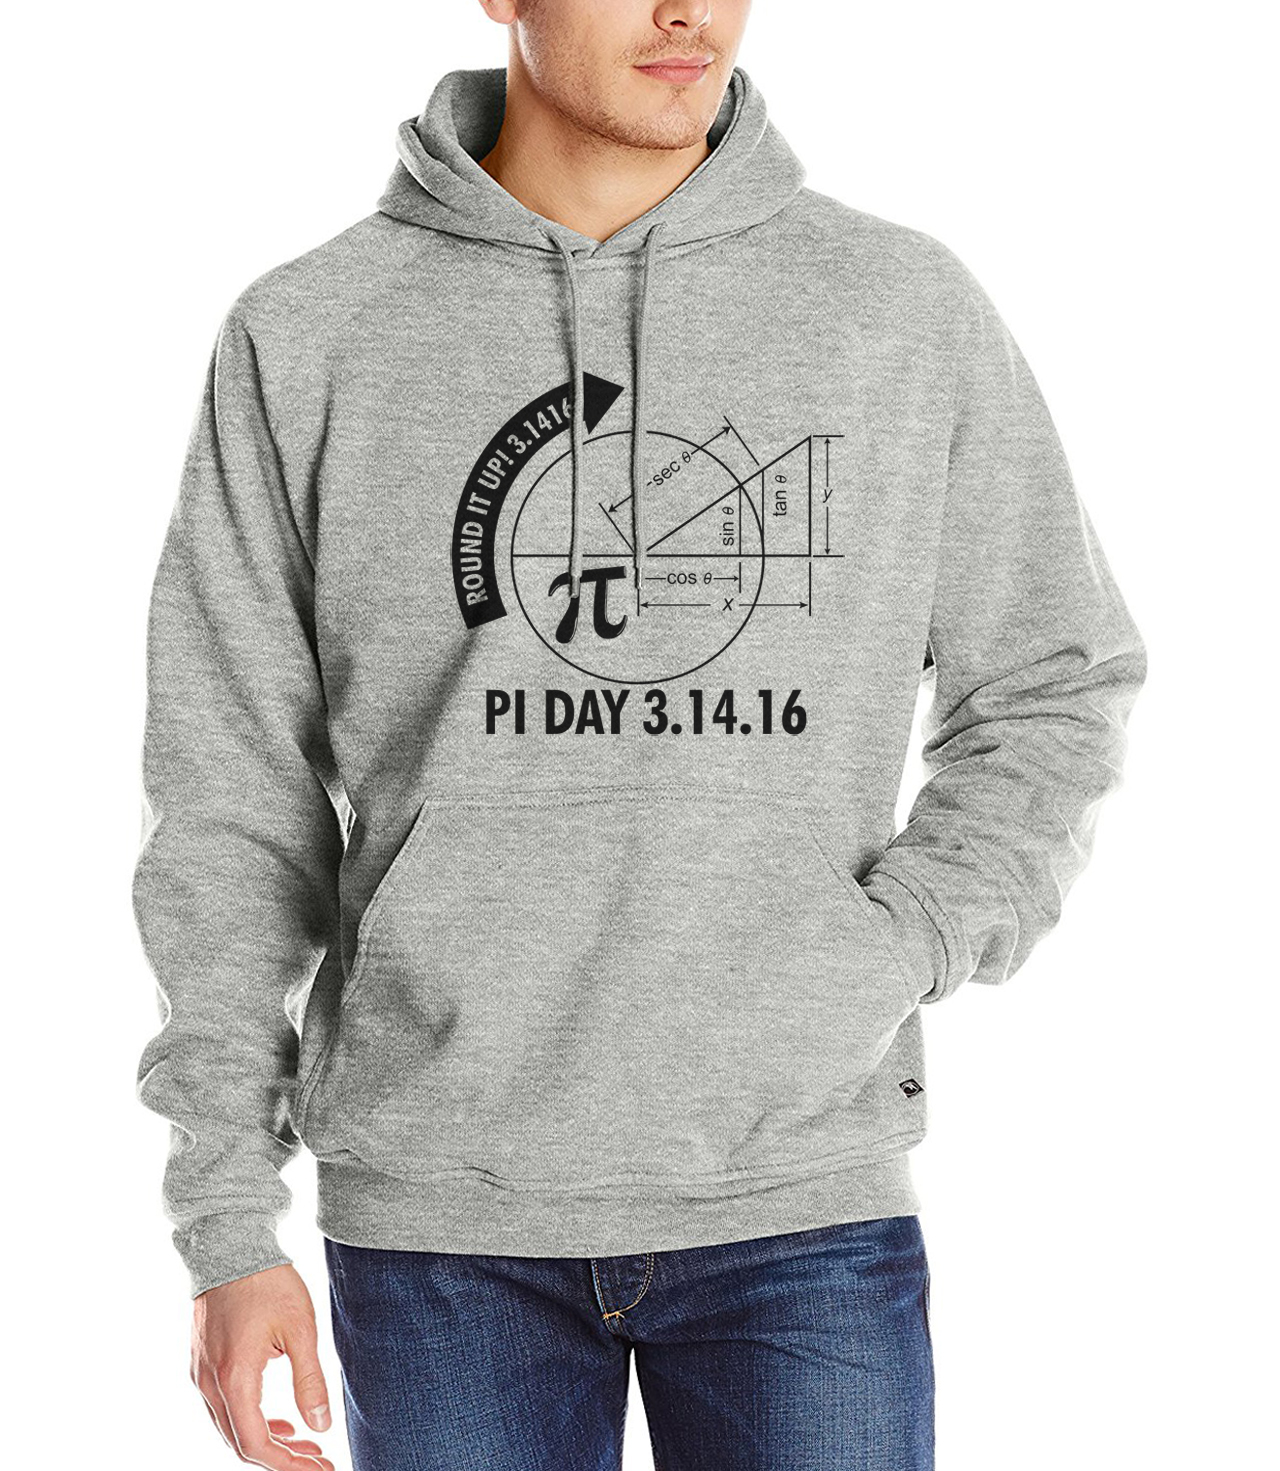 Pi Day 3.14.16 Round It Up 3.1416 Math Graph 2017 funny printed hoodies men sweatshirt harajuku autumn fleece hip-hop tracksuits